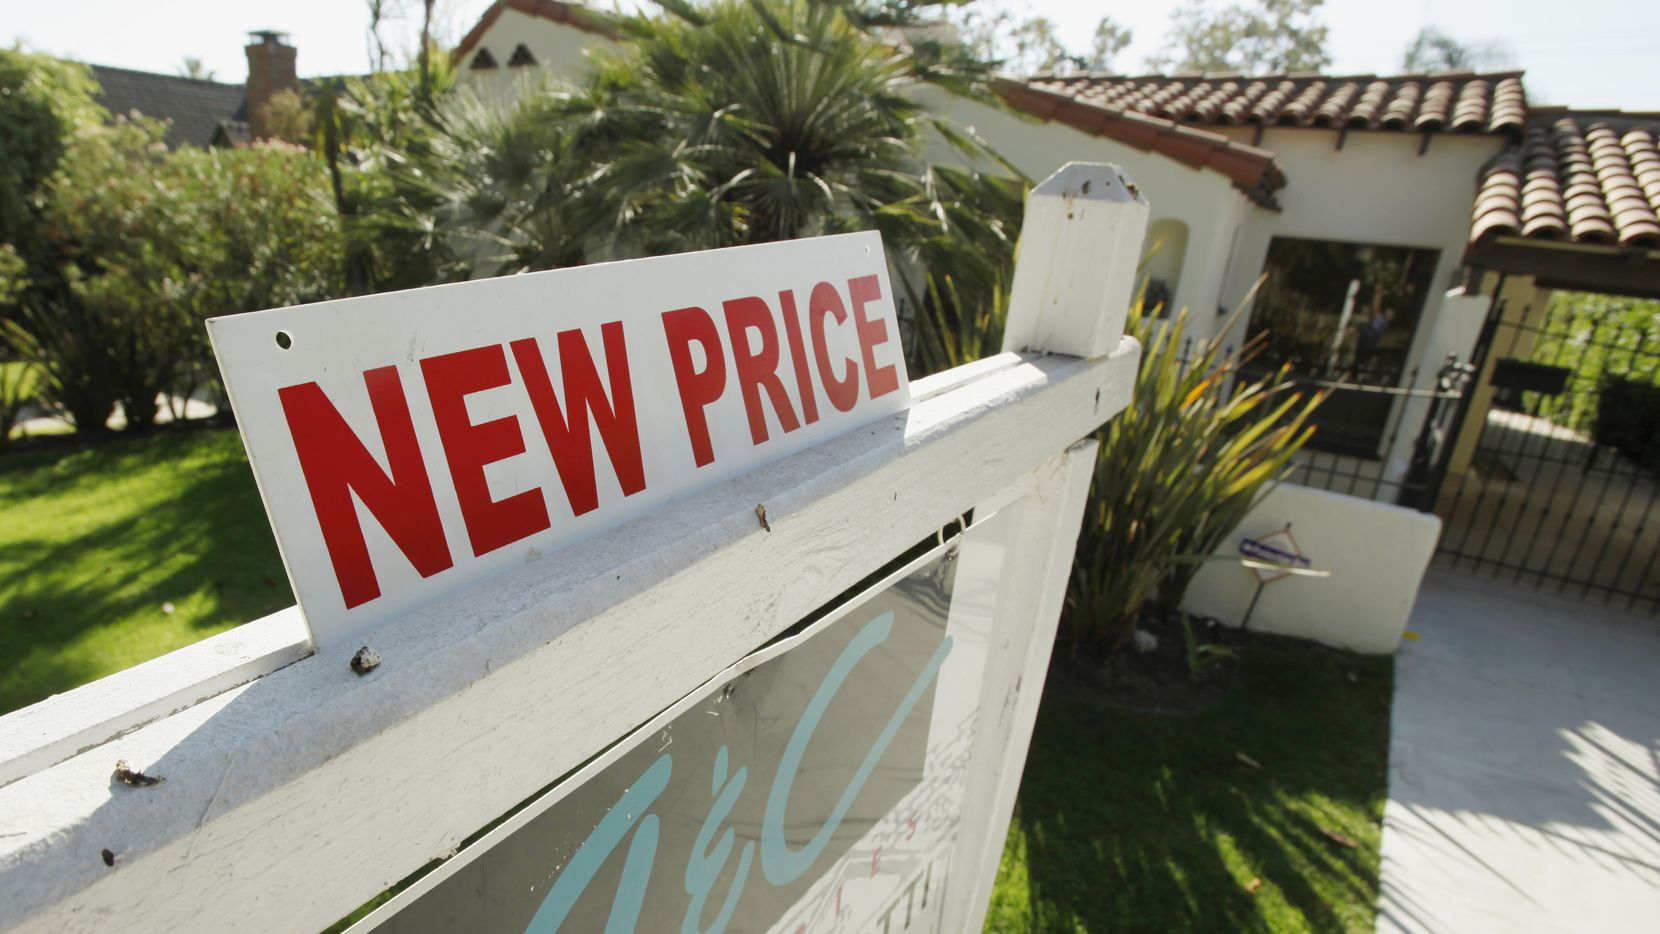 Dallas-area home prices rose by less than 3% from April 2018 levels.